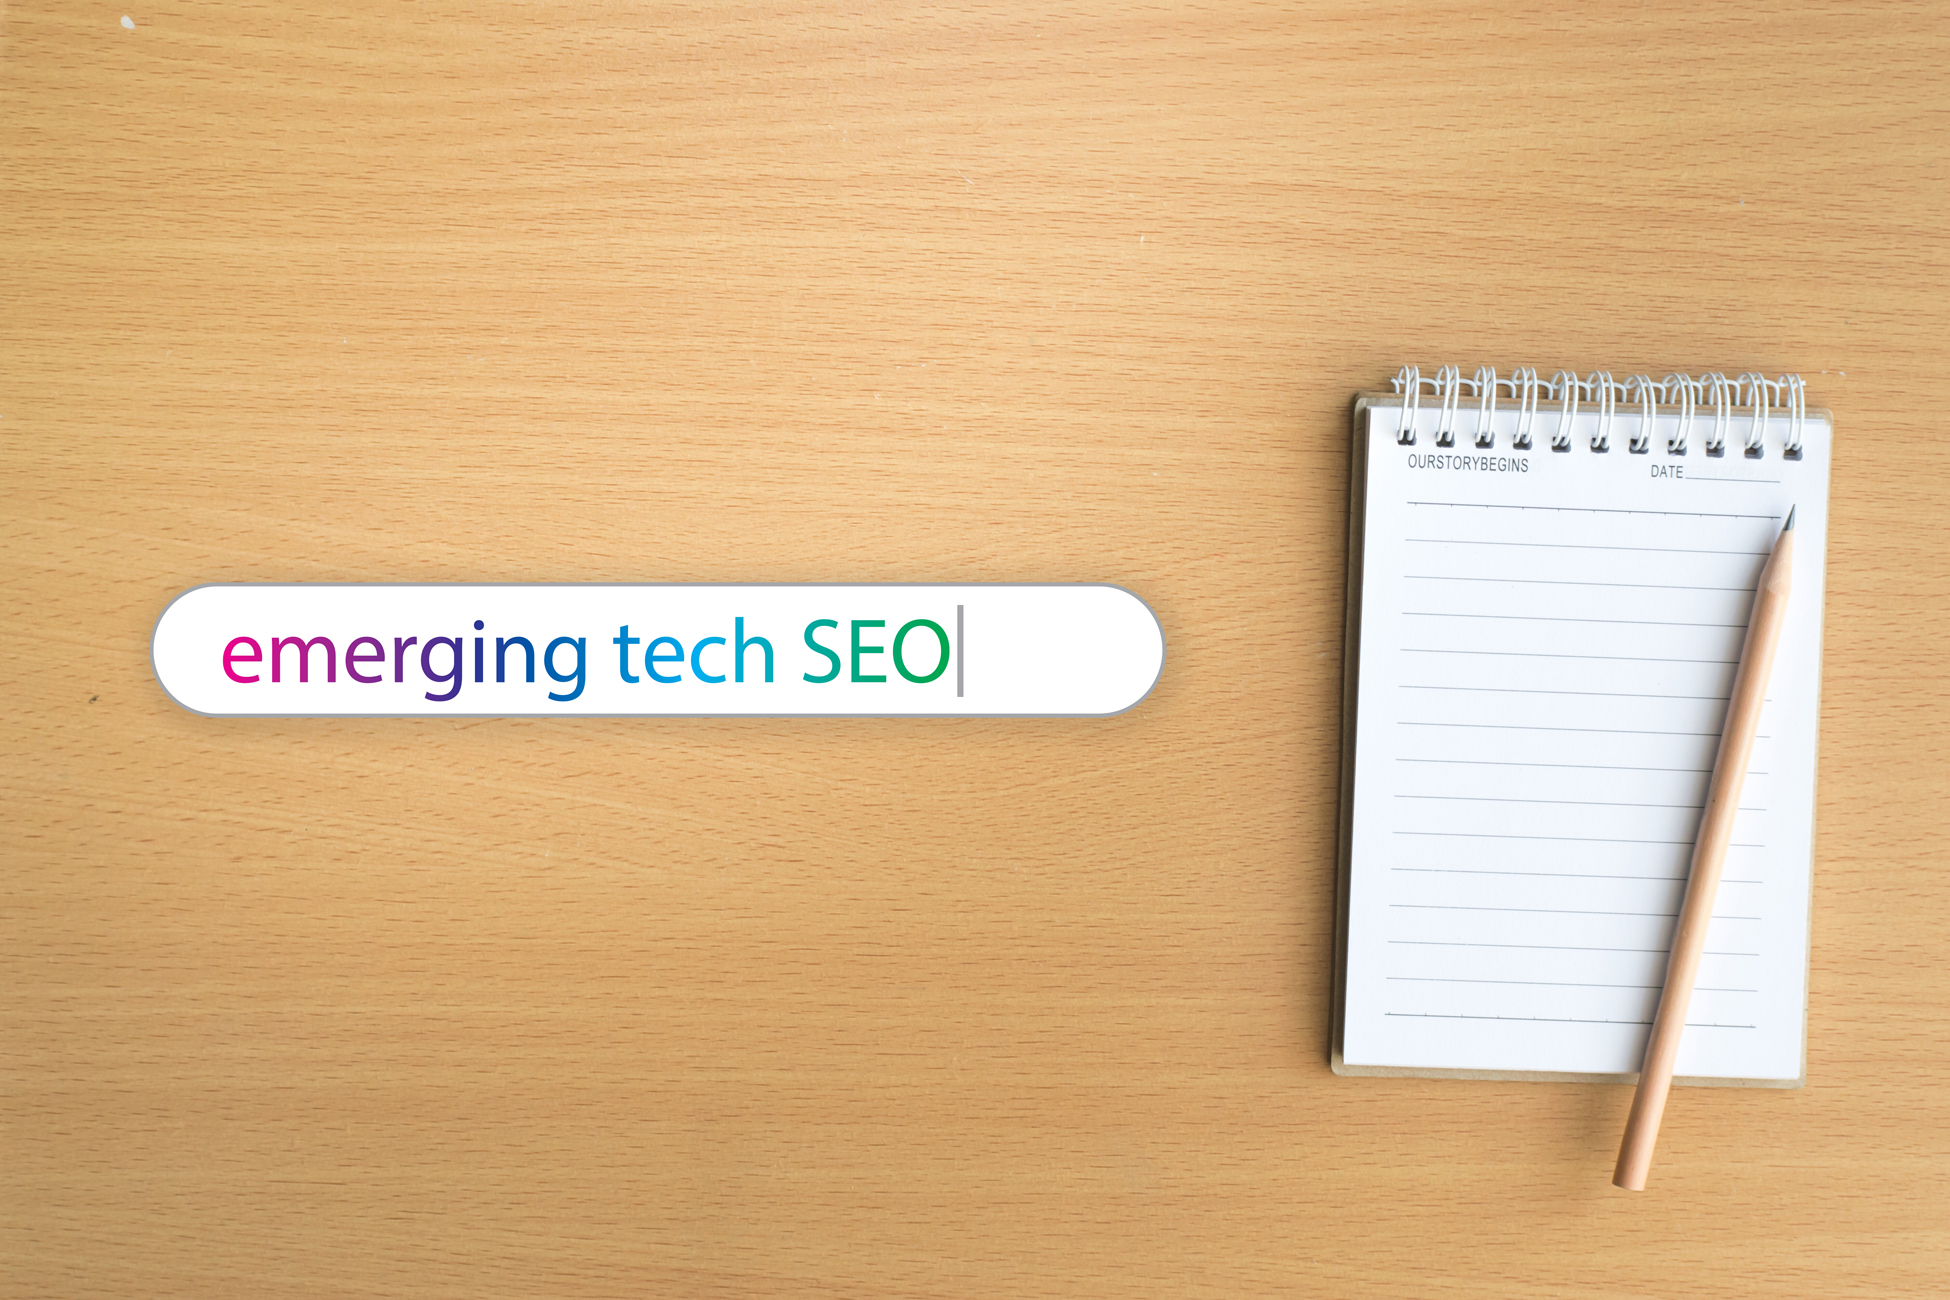 """A notebook sitting on a desk next to search bar that says """"emerging tech SEO"""""""